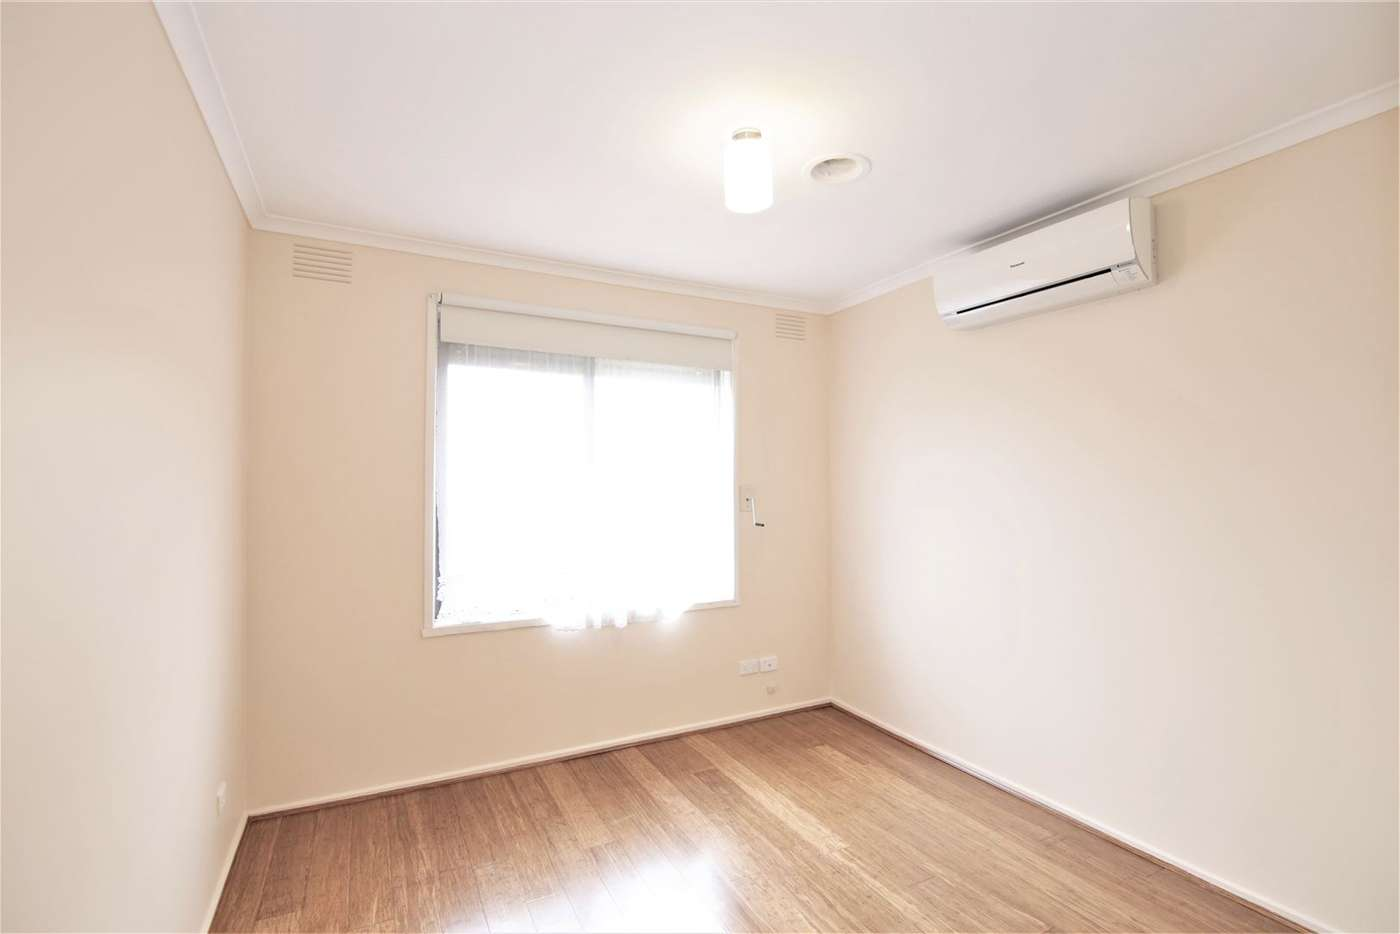 Sixth view of Homely unit listing, 2/8 Stuart Street, Noble Park VIC 3174